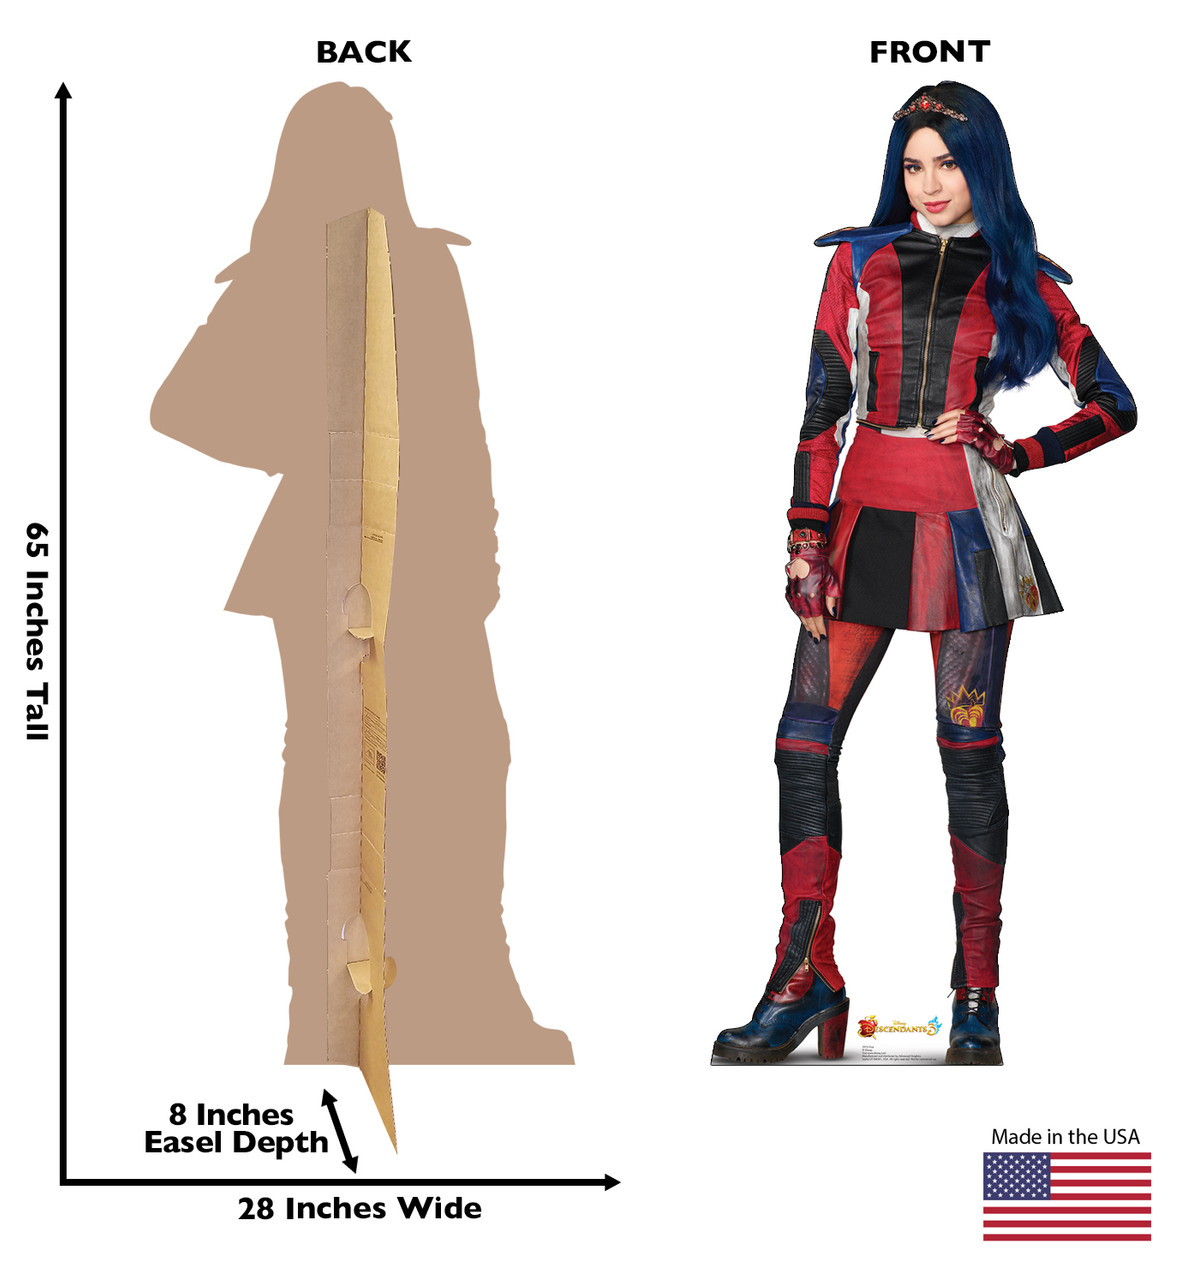 Evie - Disney's Descendants 3 Cardboard Cutout Front and Back View